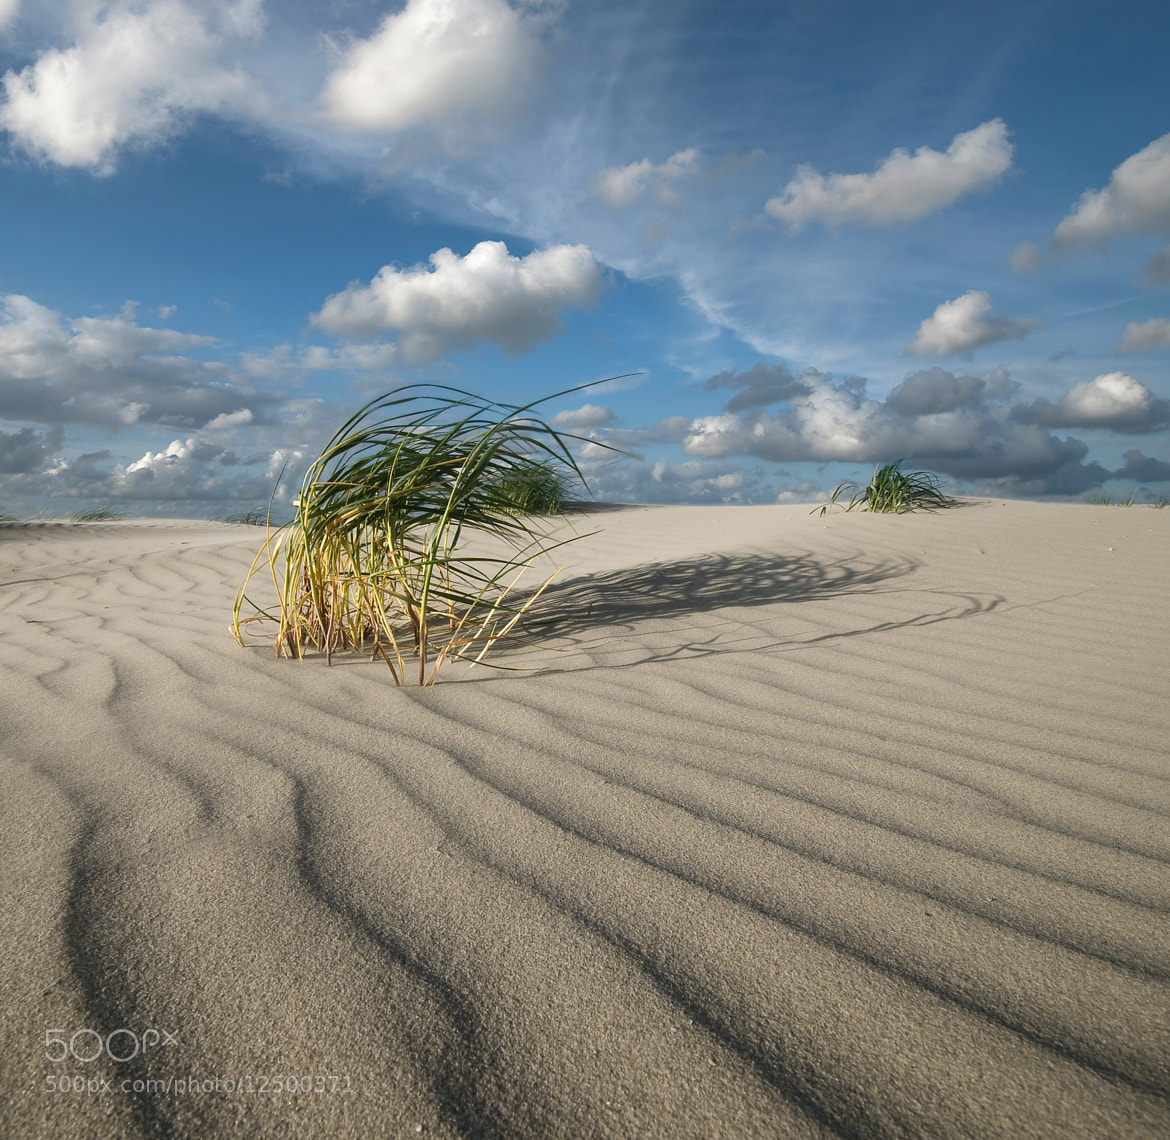 Photograph Wild Beach by Daniel Bosma on 500px